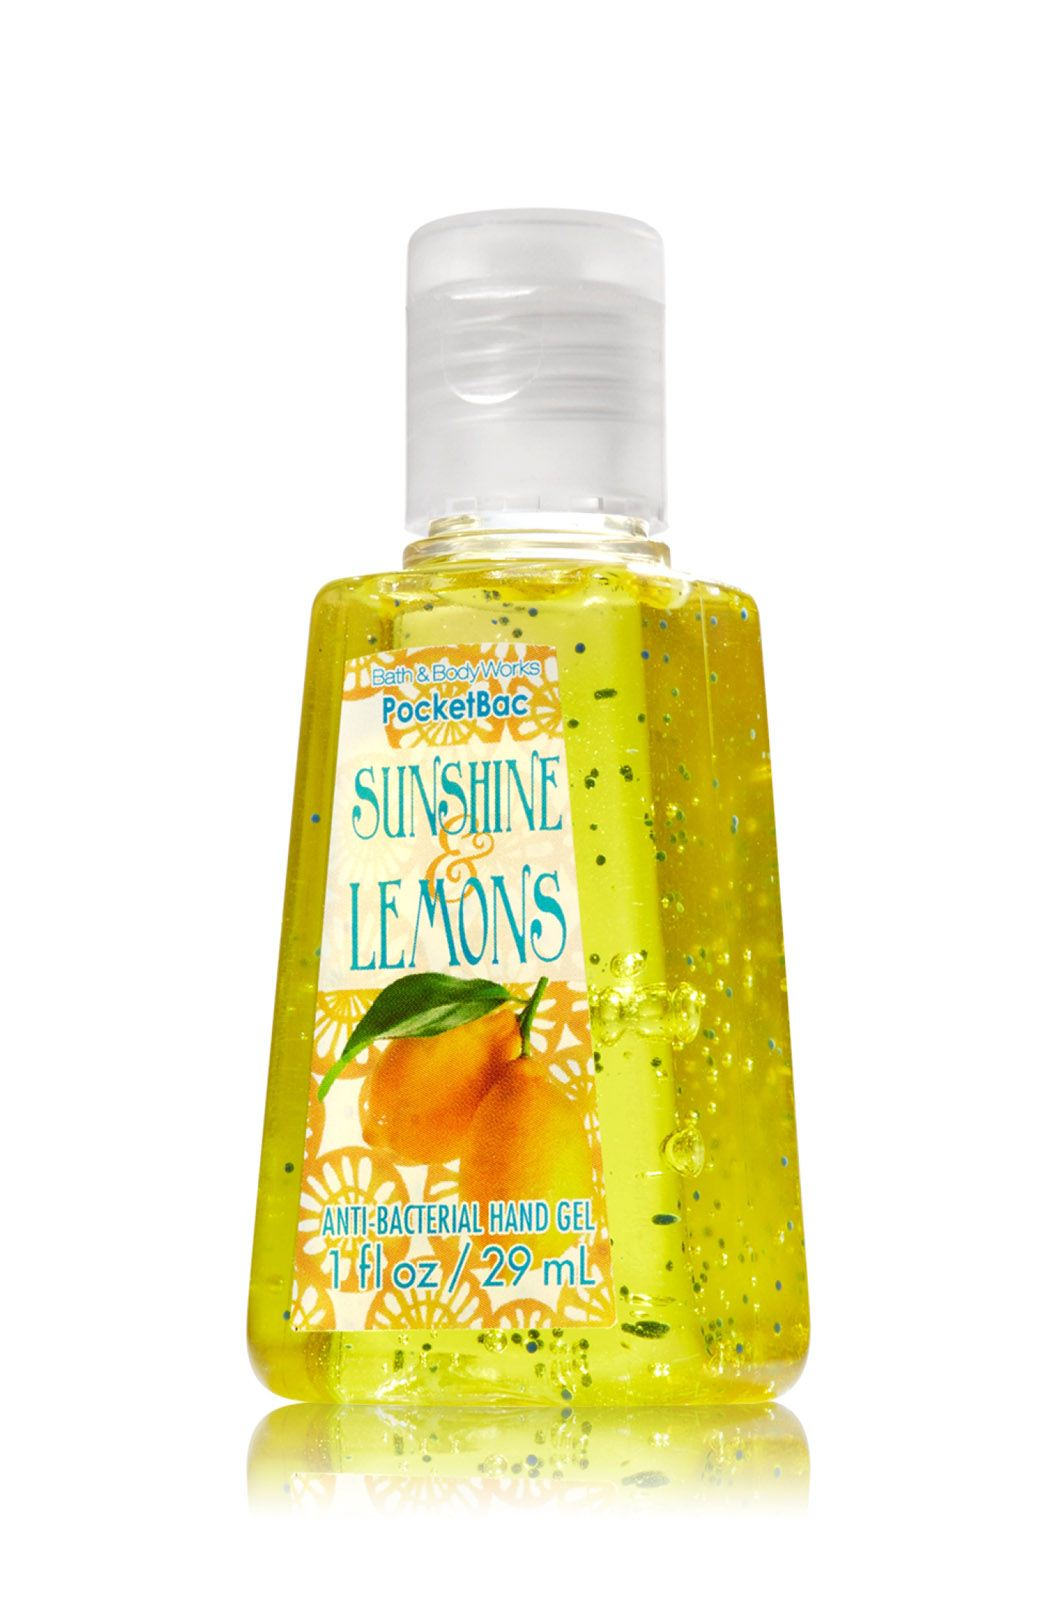 Bath & Body Works Pocketbac Hand Sanitizer Gel Soap